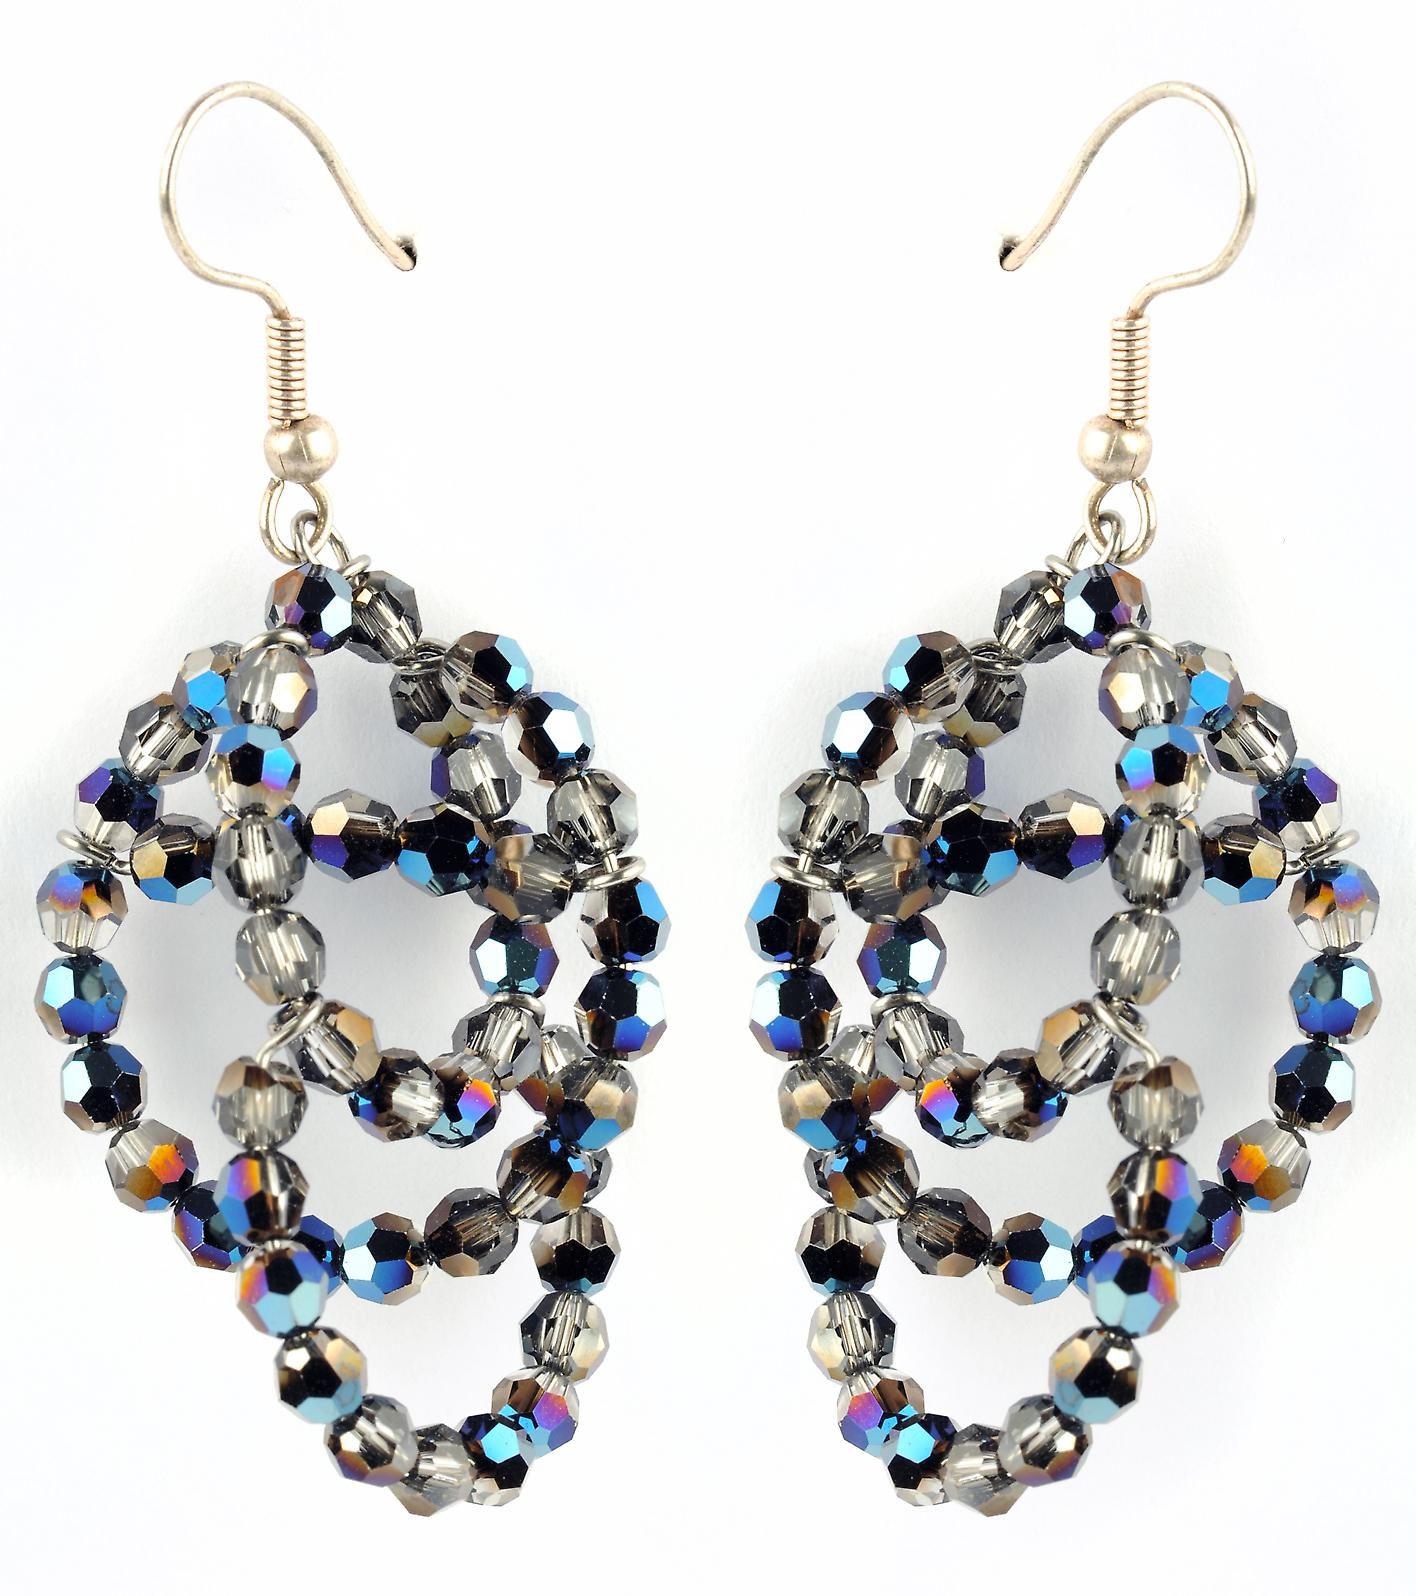 Waooh - Fashion Jewellery - WJ0748 - On Earrings with Swarovski Color Silver Iridium - Frame Color Silver